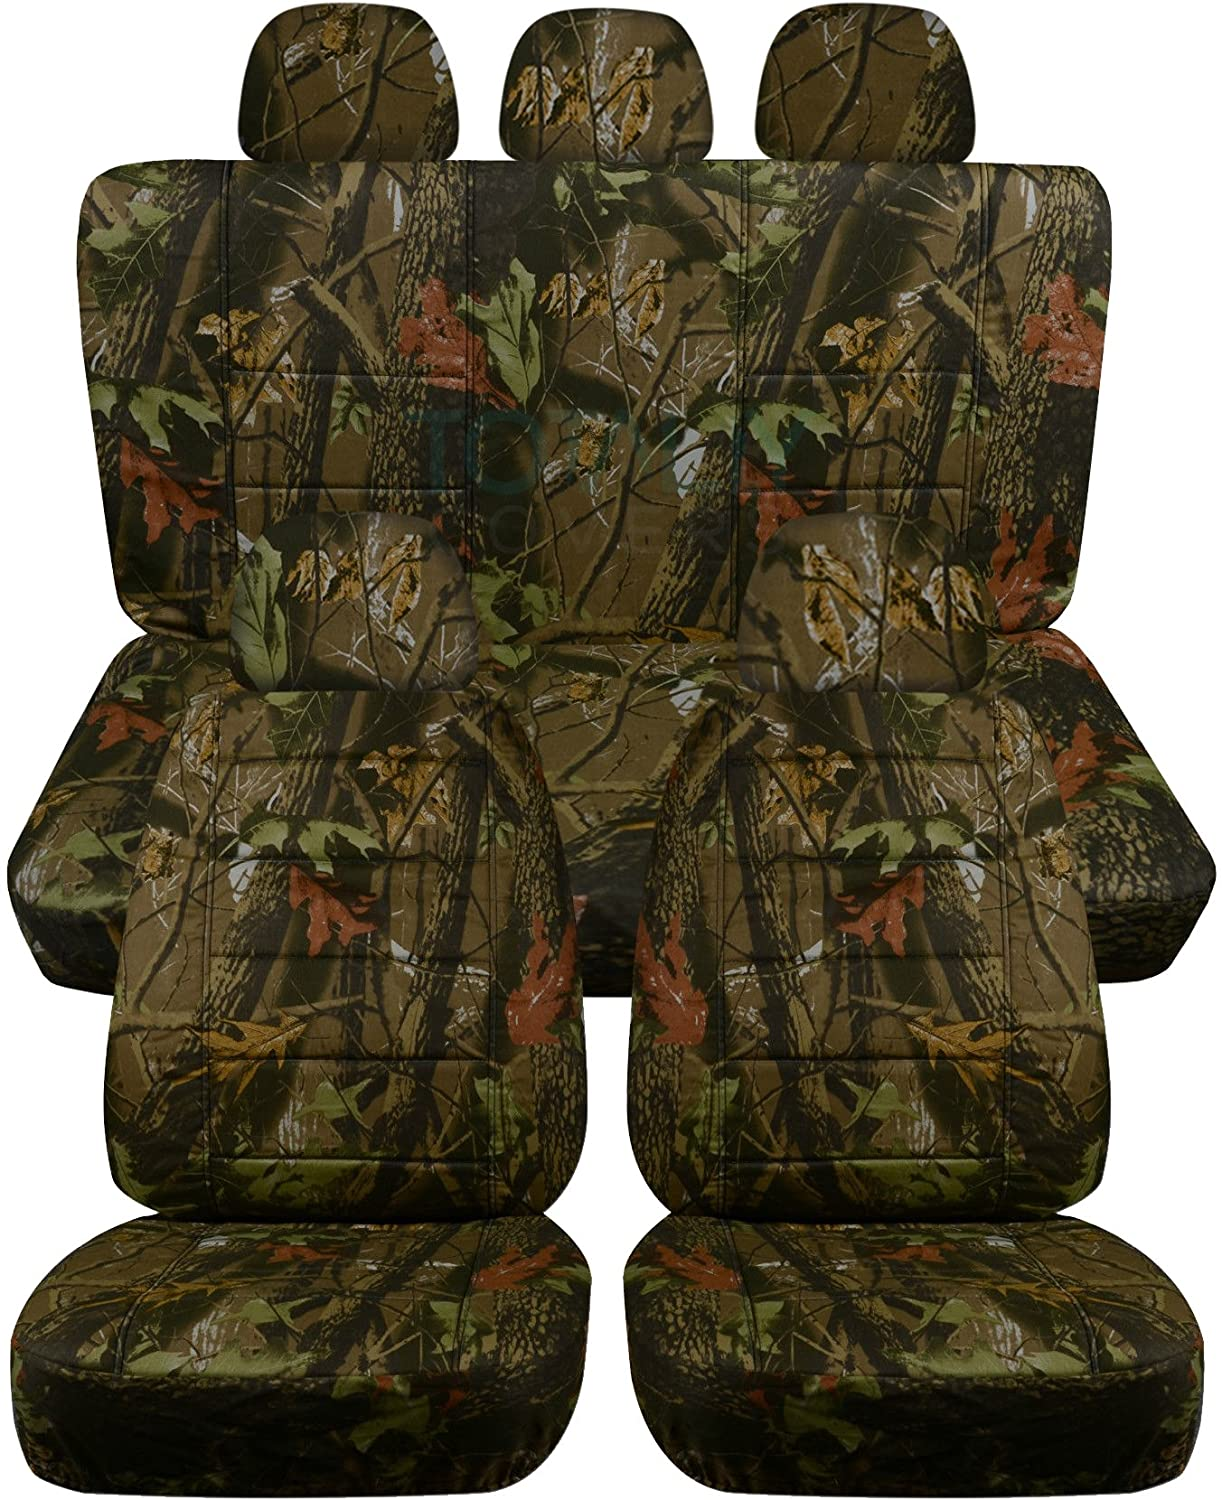 Semi-Custom Fit Camouflage Car Seat Covers w 5 Headrest Covers: Woods Camo 2 Front + 3 Rear 22 Prints Full Set Will Make Fit Any Car//Truck//Van//SUV